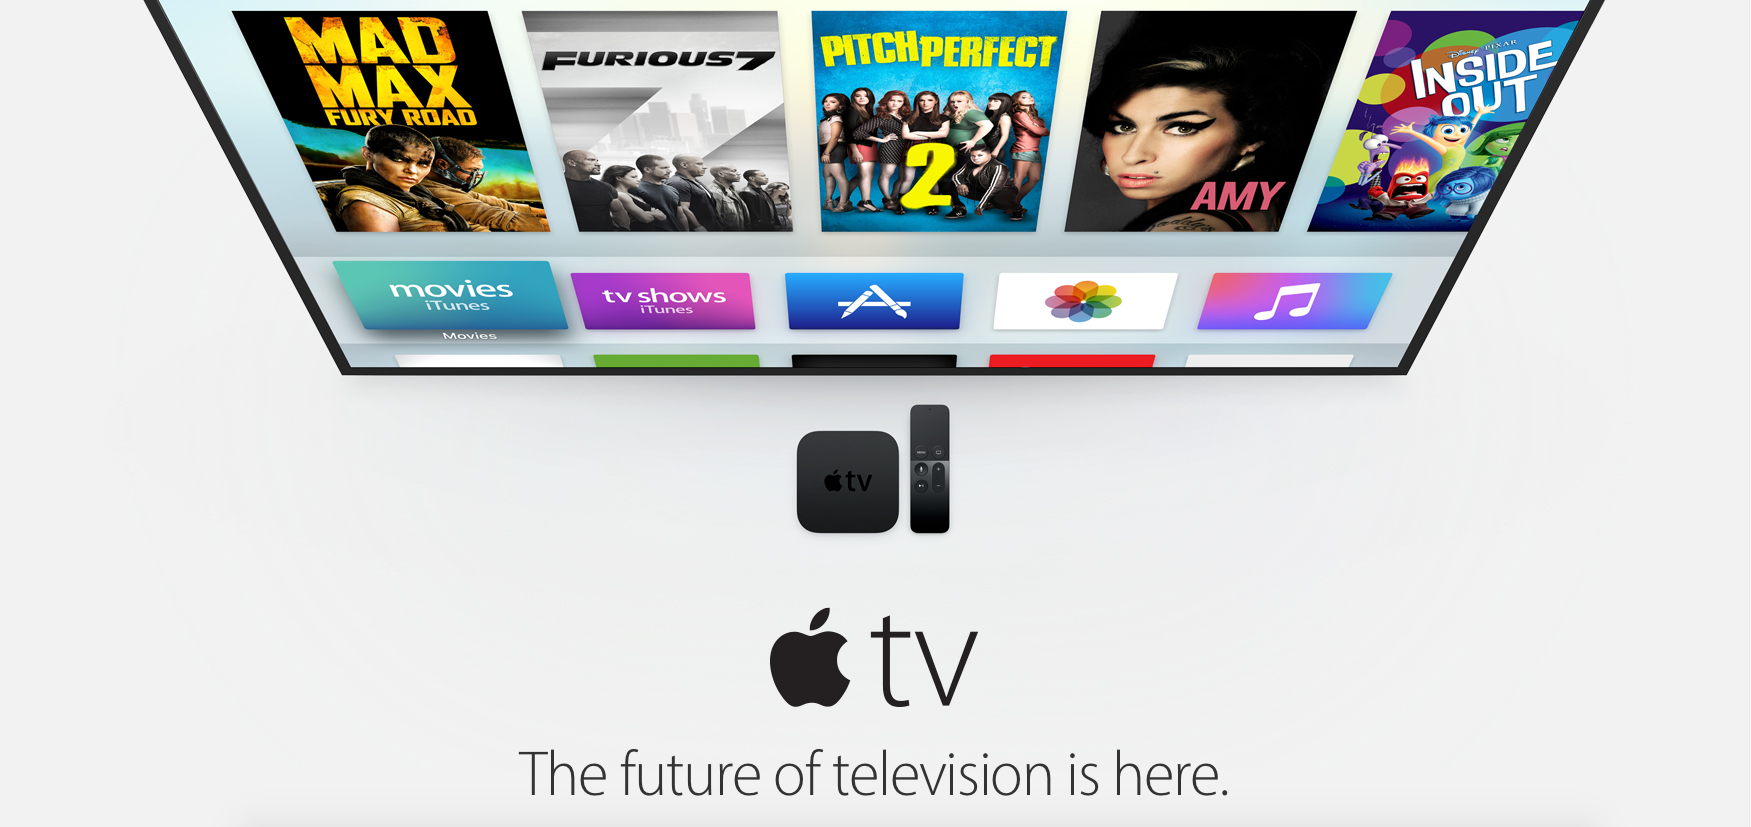 7 apps I really want to see on the new Apple TV